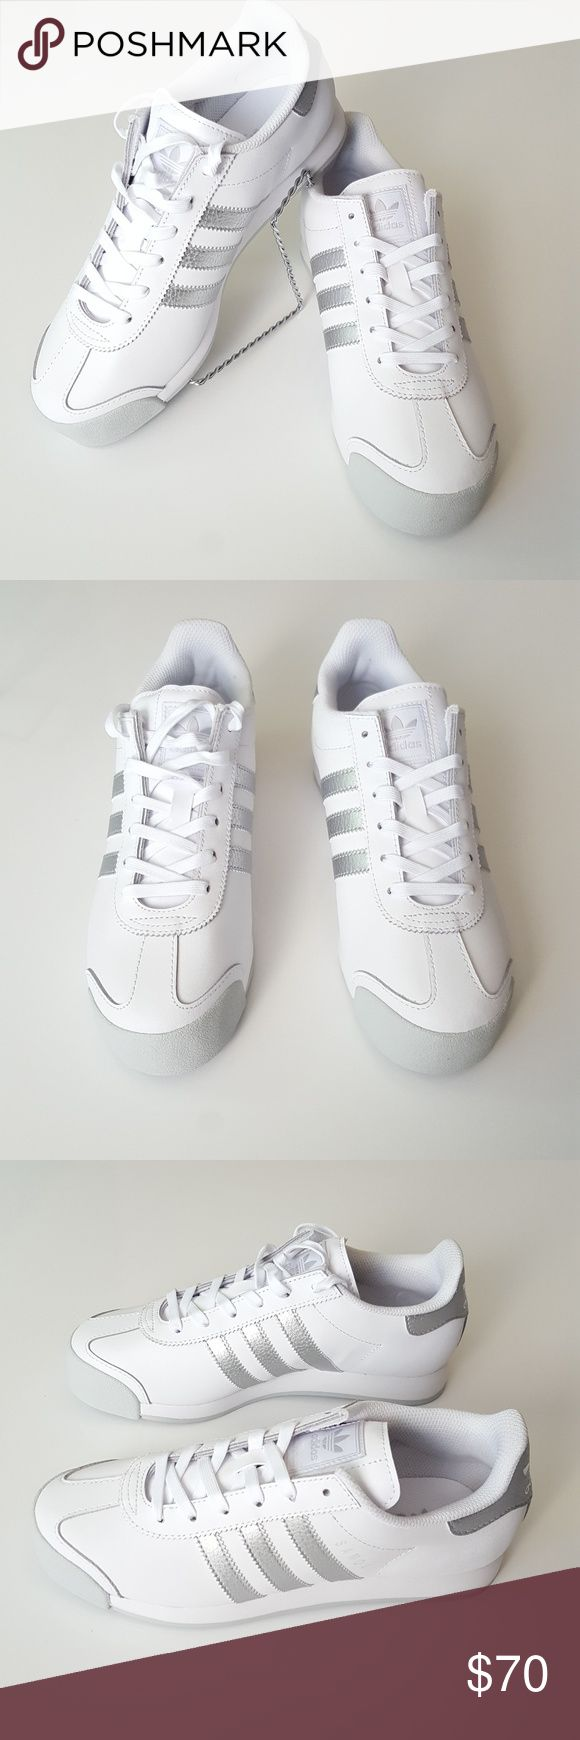 ♀ NEW ADIDAS WOMEN'S White & Silver Samoa Shoe 100% authentic Brand new with box  FEATURES: Leather upper with silver leather overlays Breathable mesh lining Padded collar provides cushion and support Reinforced toe with rubber toe bumper offers protection and durability EVA midsole provides lightweight shock absorbing comfort Rubber outsole delivers flexible traction  Check out my other Burberry, Zara, Nike, Under Armour, J Crew, Vince Camuto, TOPSHOP, Coach, Michael Kors, Forever 21, Kate…